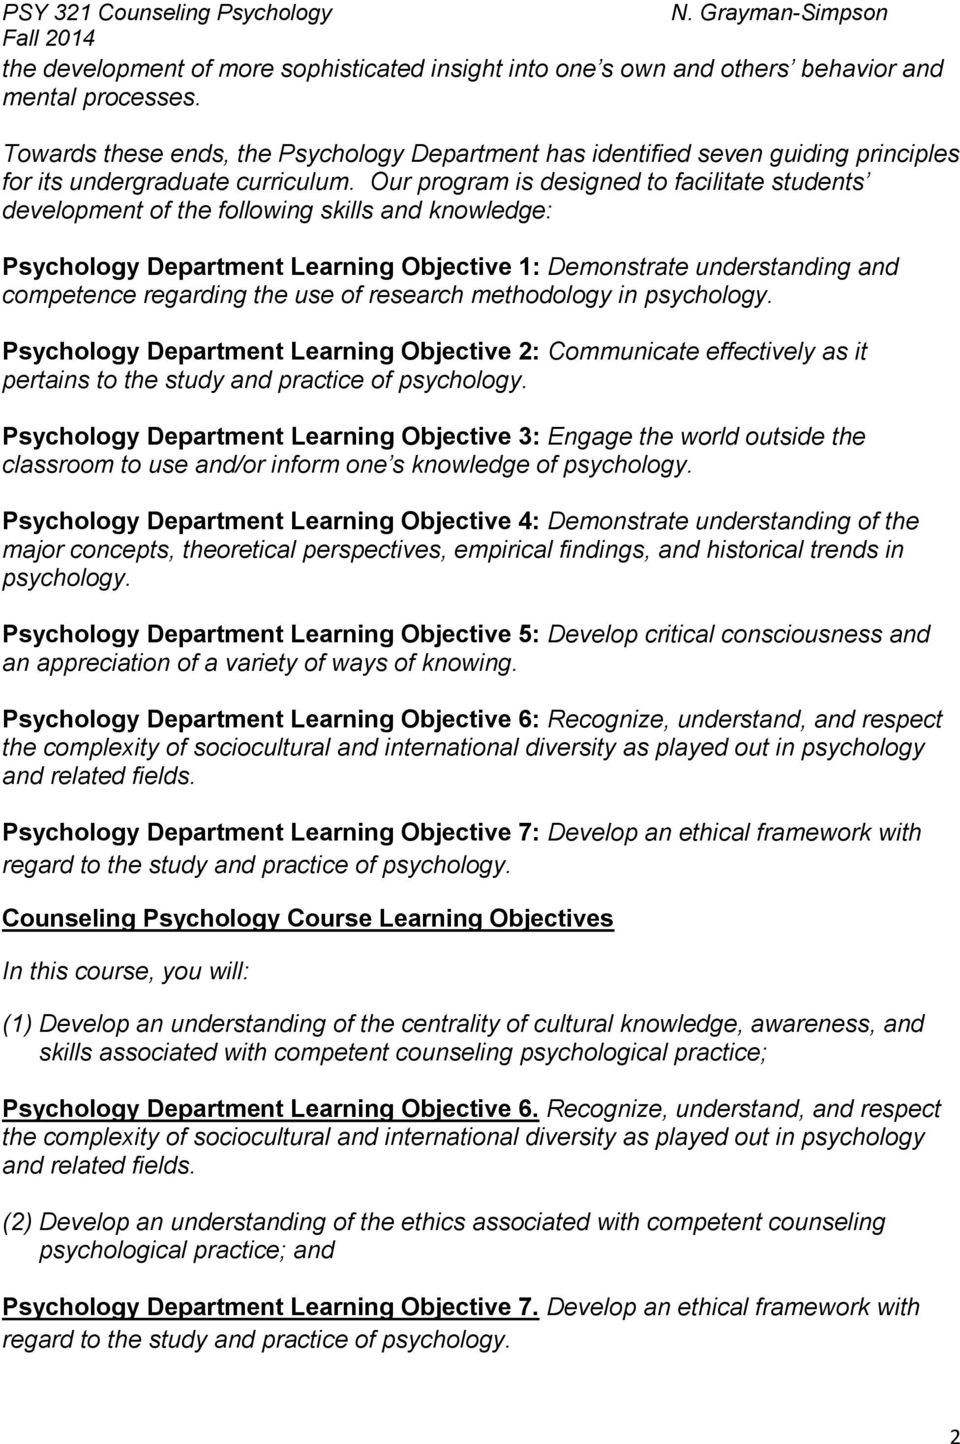 Our program is designed to facilitate students development of the following skills and knowledge: Psychology Department Learning Objective 1: Demonstrate understanding and competence regarding the